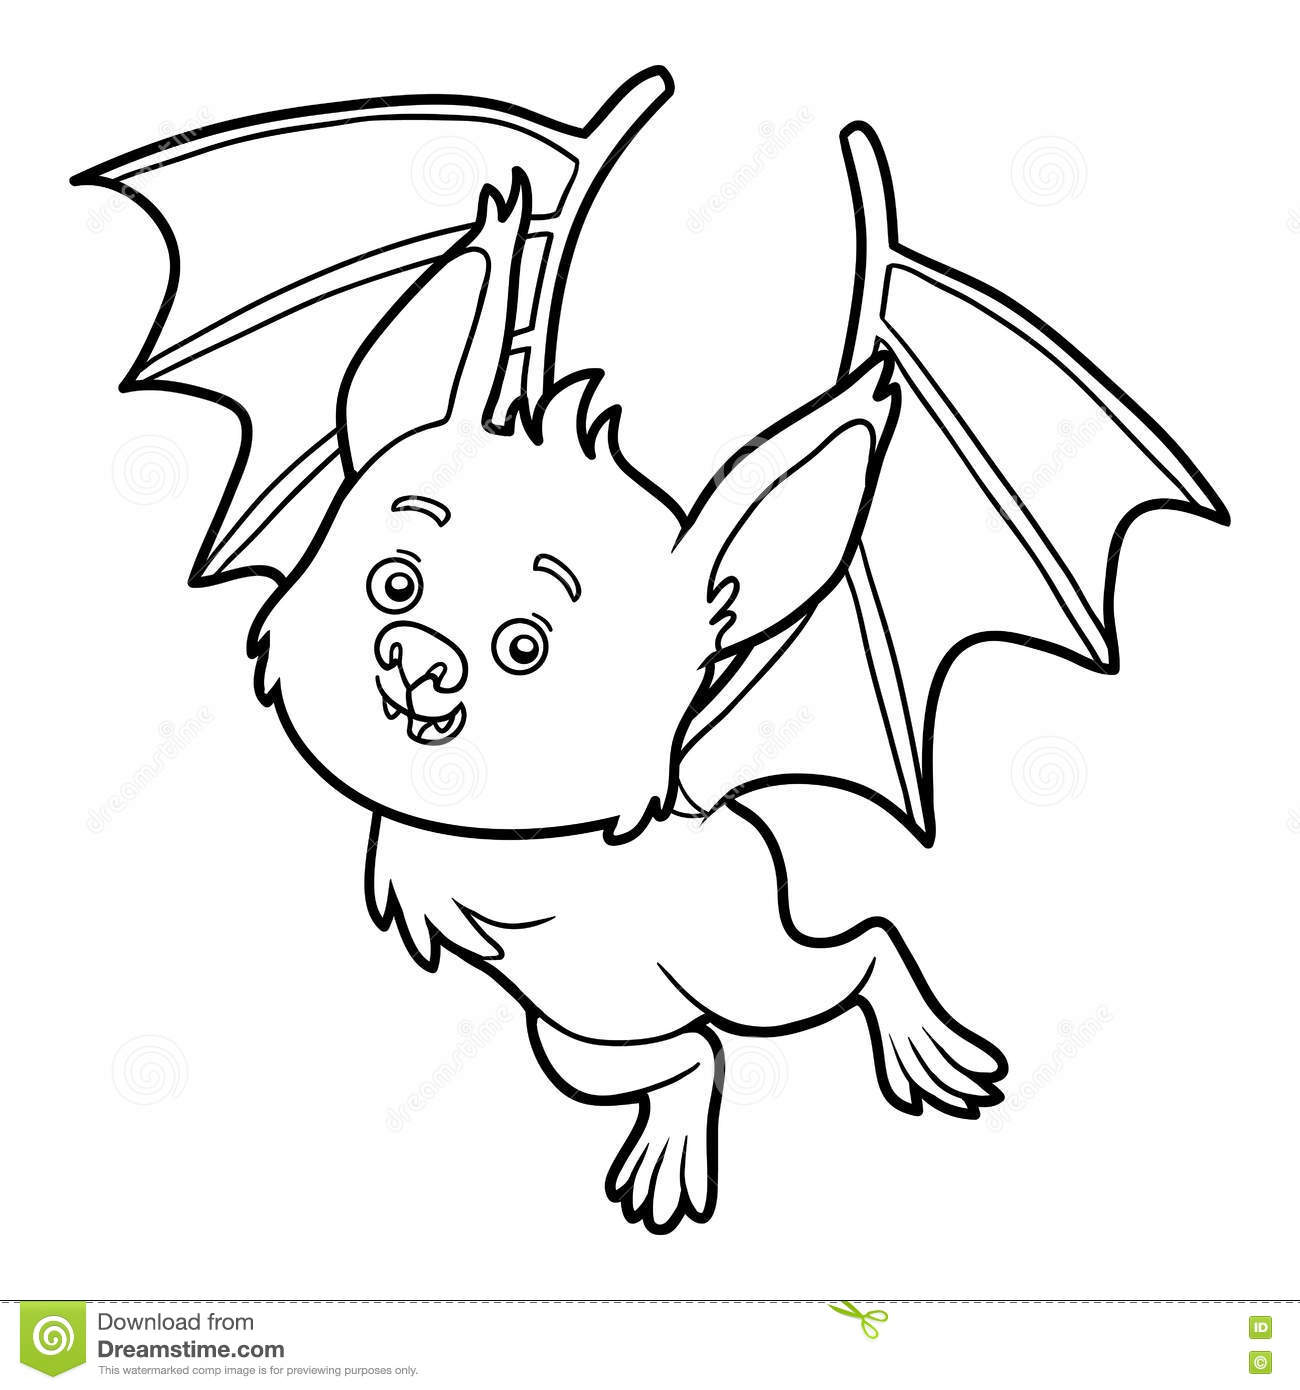 Coloring pictures of vampire bats 103 best Texas City Explosion images on Pinterest Texas history